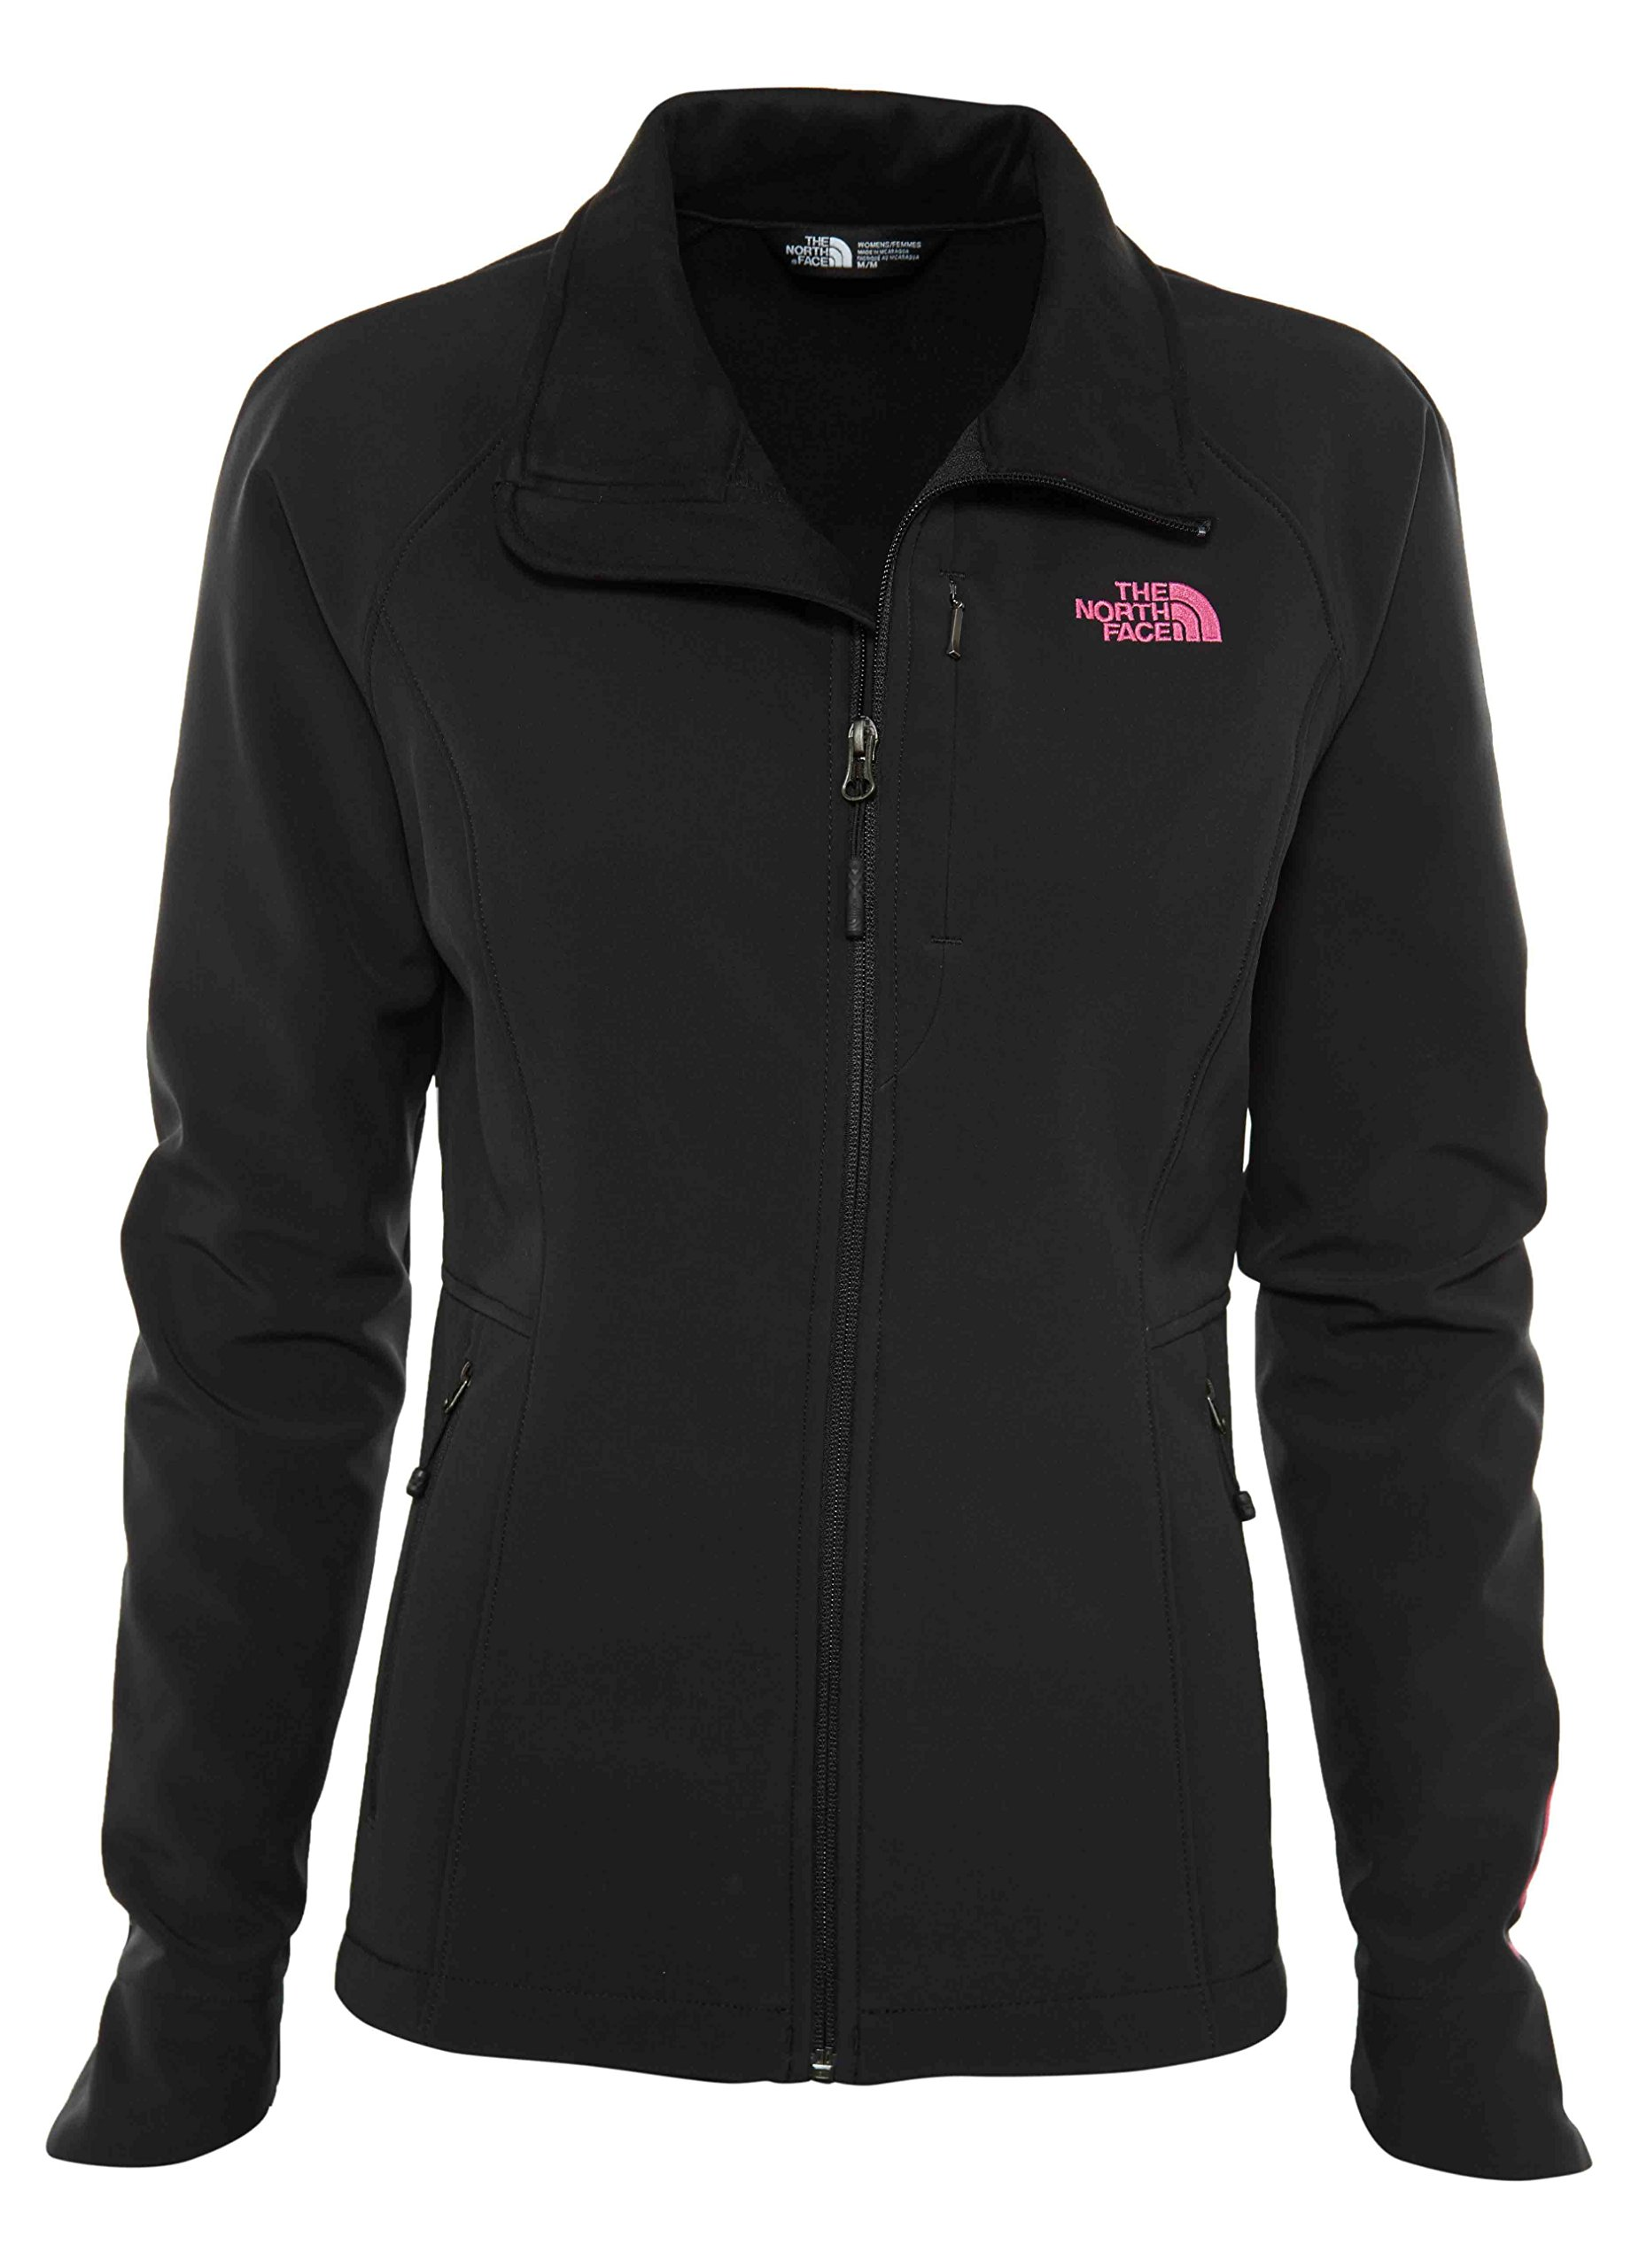 The North Face Pink Ribbon Bionic Jacket Womens Style: A2SN3-D6P Size: L